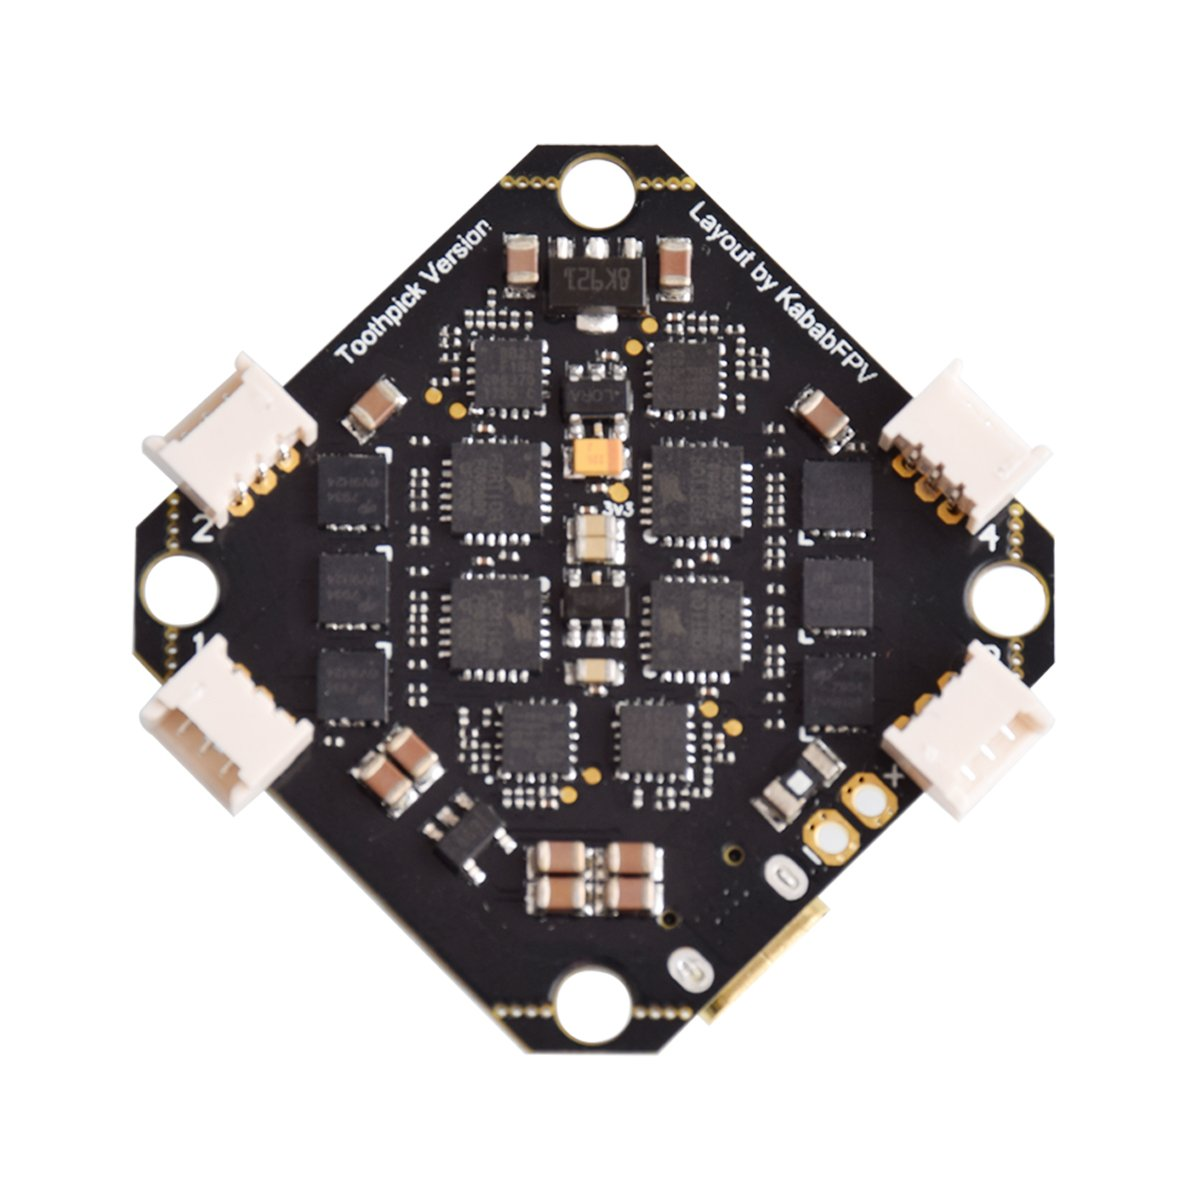 BetaFPV Toothpick F4 2-4S AIO Brushless Flight Controller 12A(BLHeli_S) - Pins PreSoldered